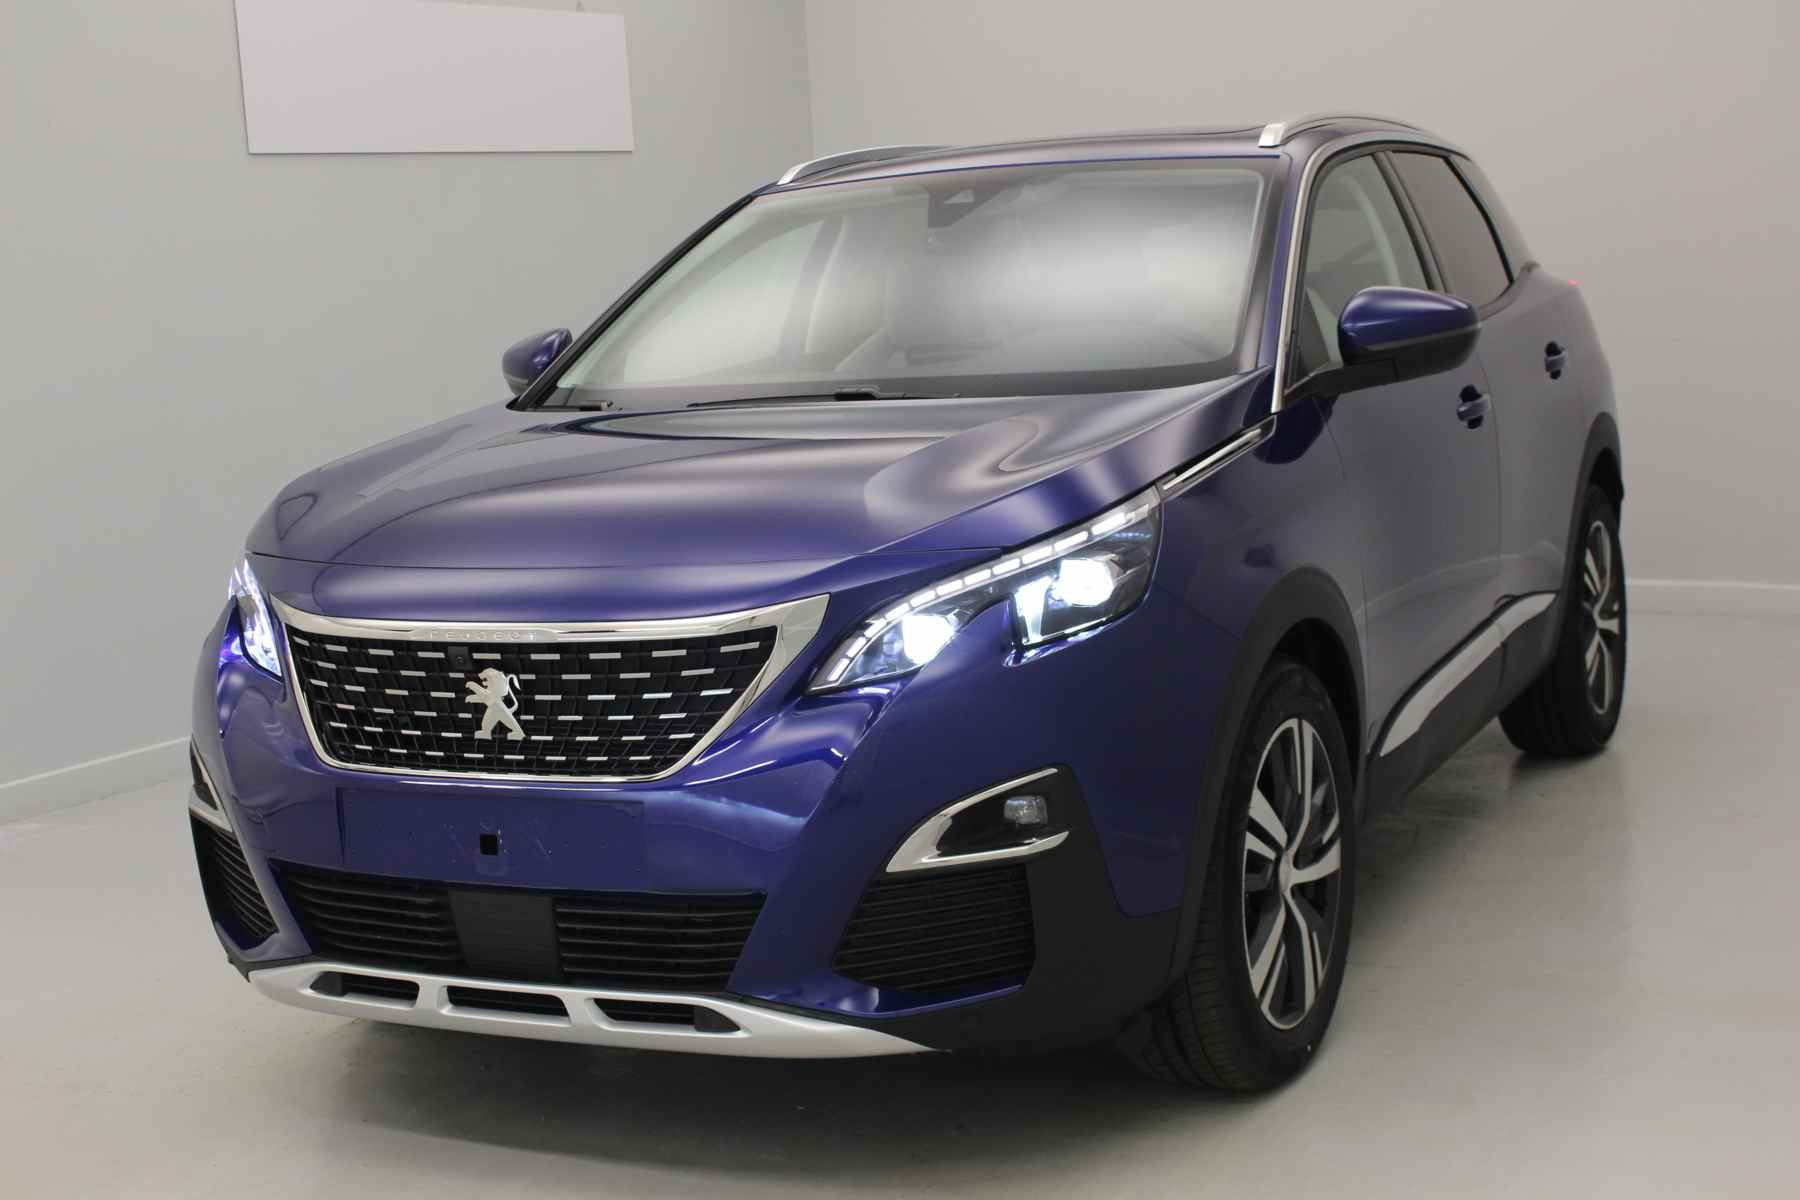 PEUGEOT 3008 Nouveau 2.0 BlueHDi 150ch S&S BVM6 Allure Bleu Magnétic + Toit panoramique + i-Cockpit Amplify avec options